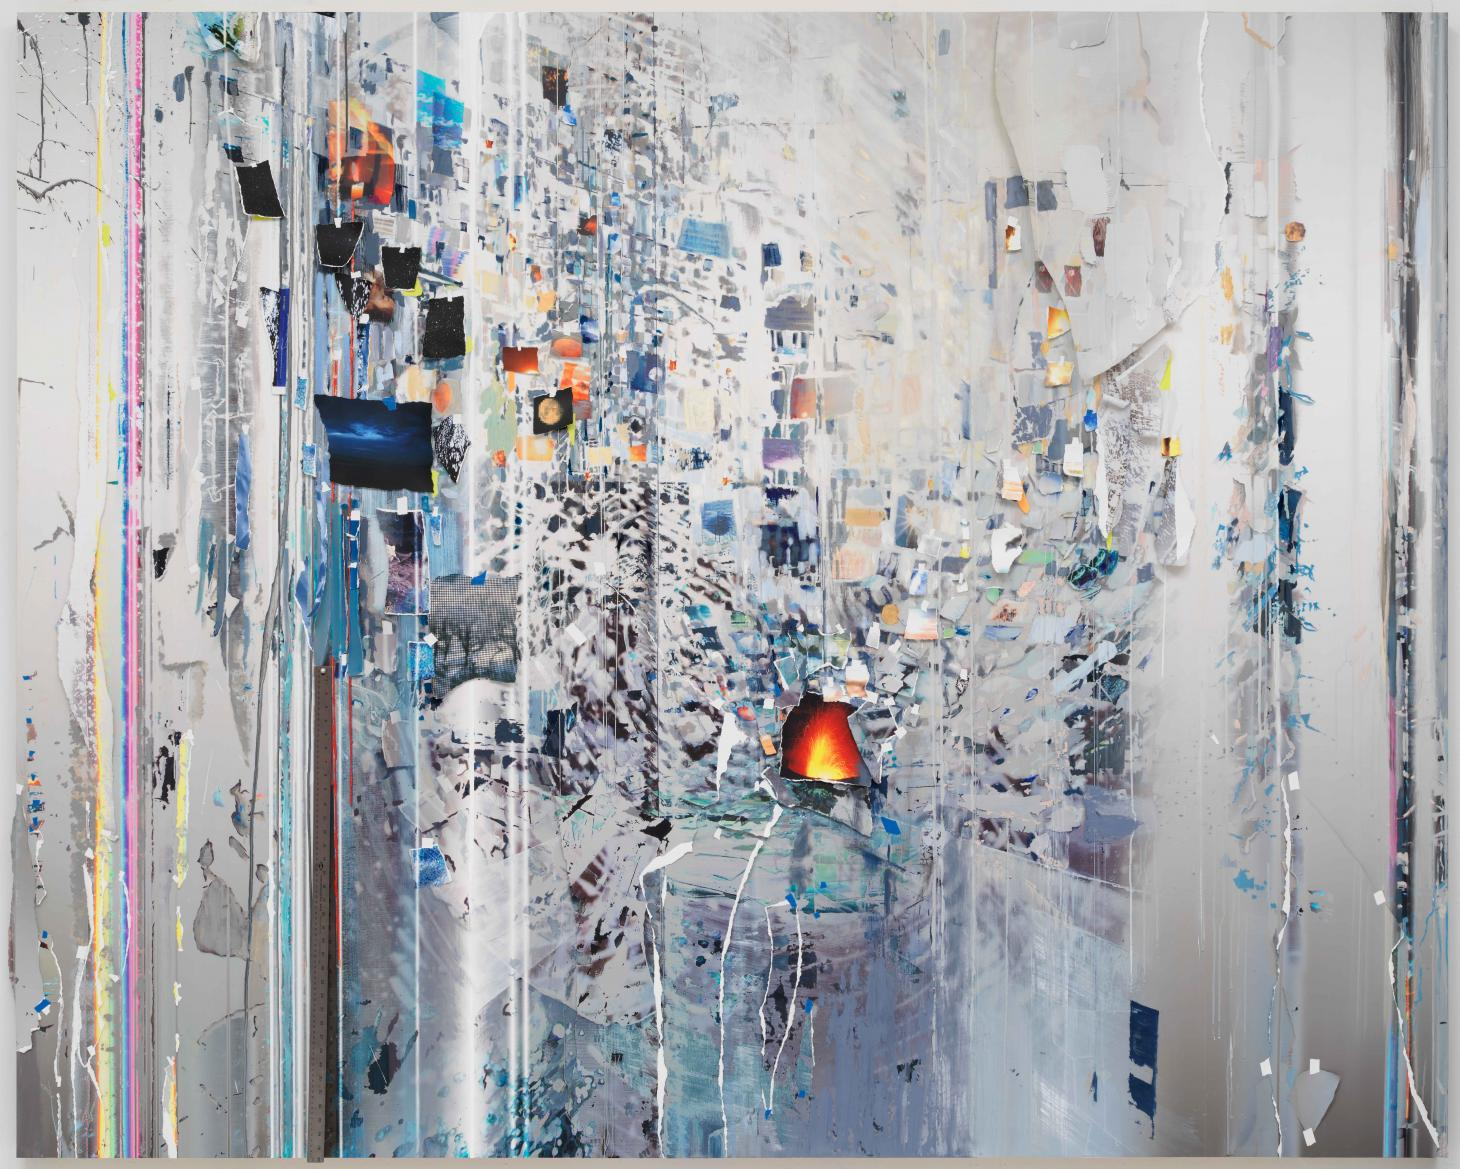 First Time, from the Half-life series, by Sarah Sze